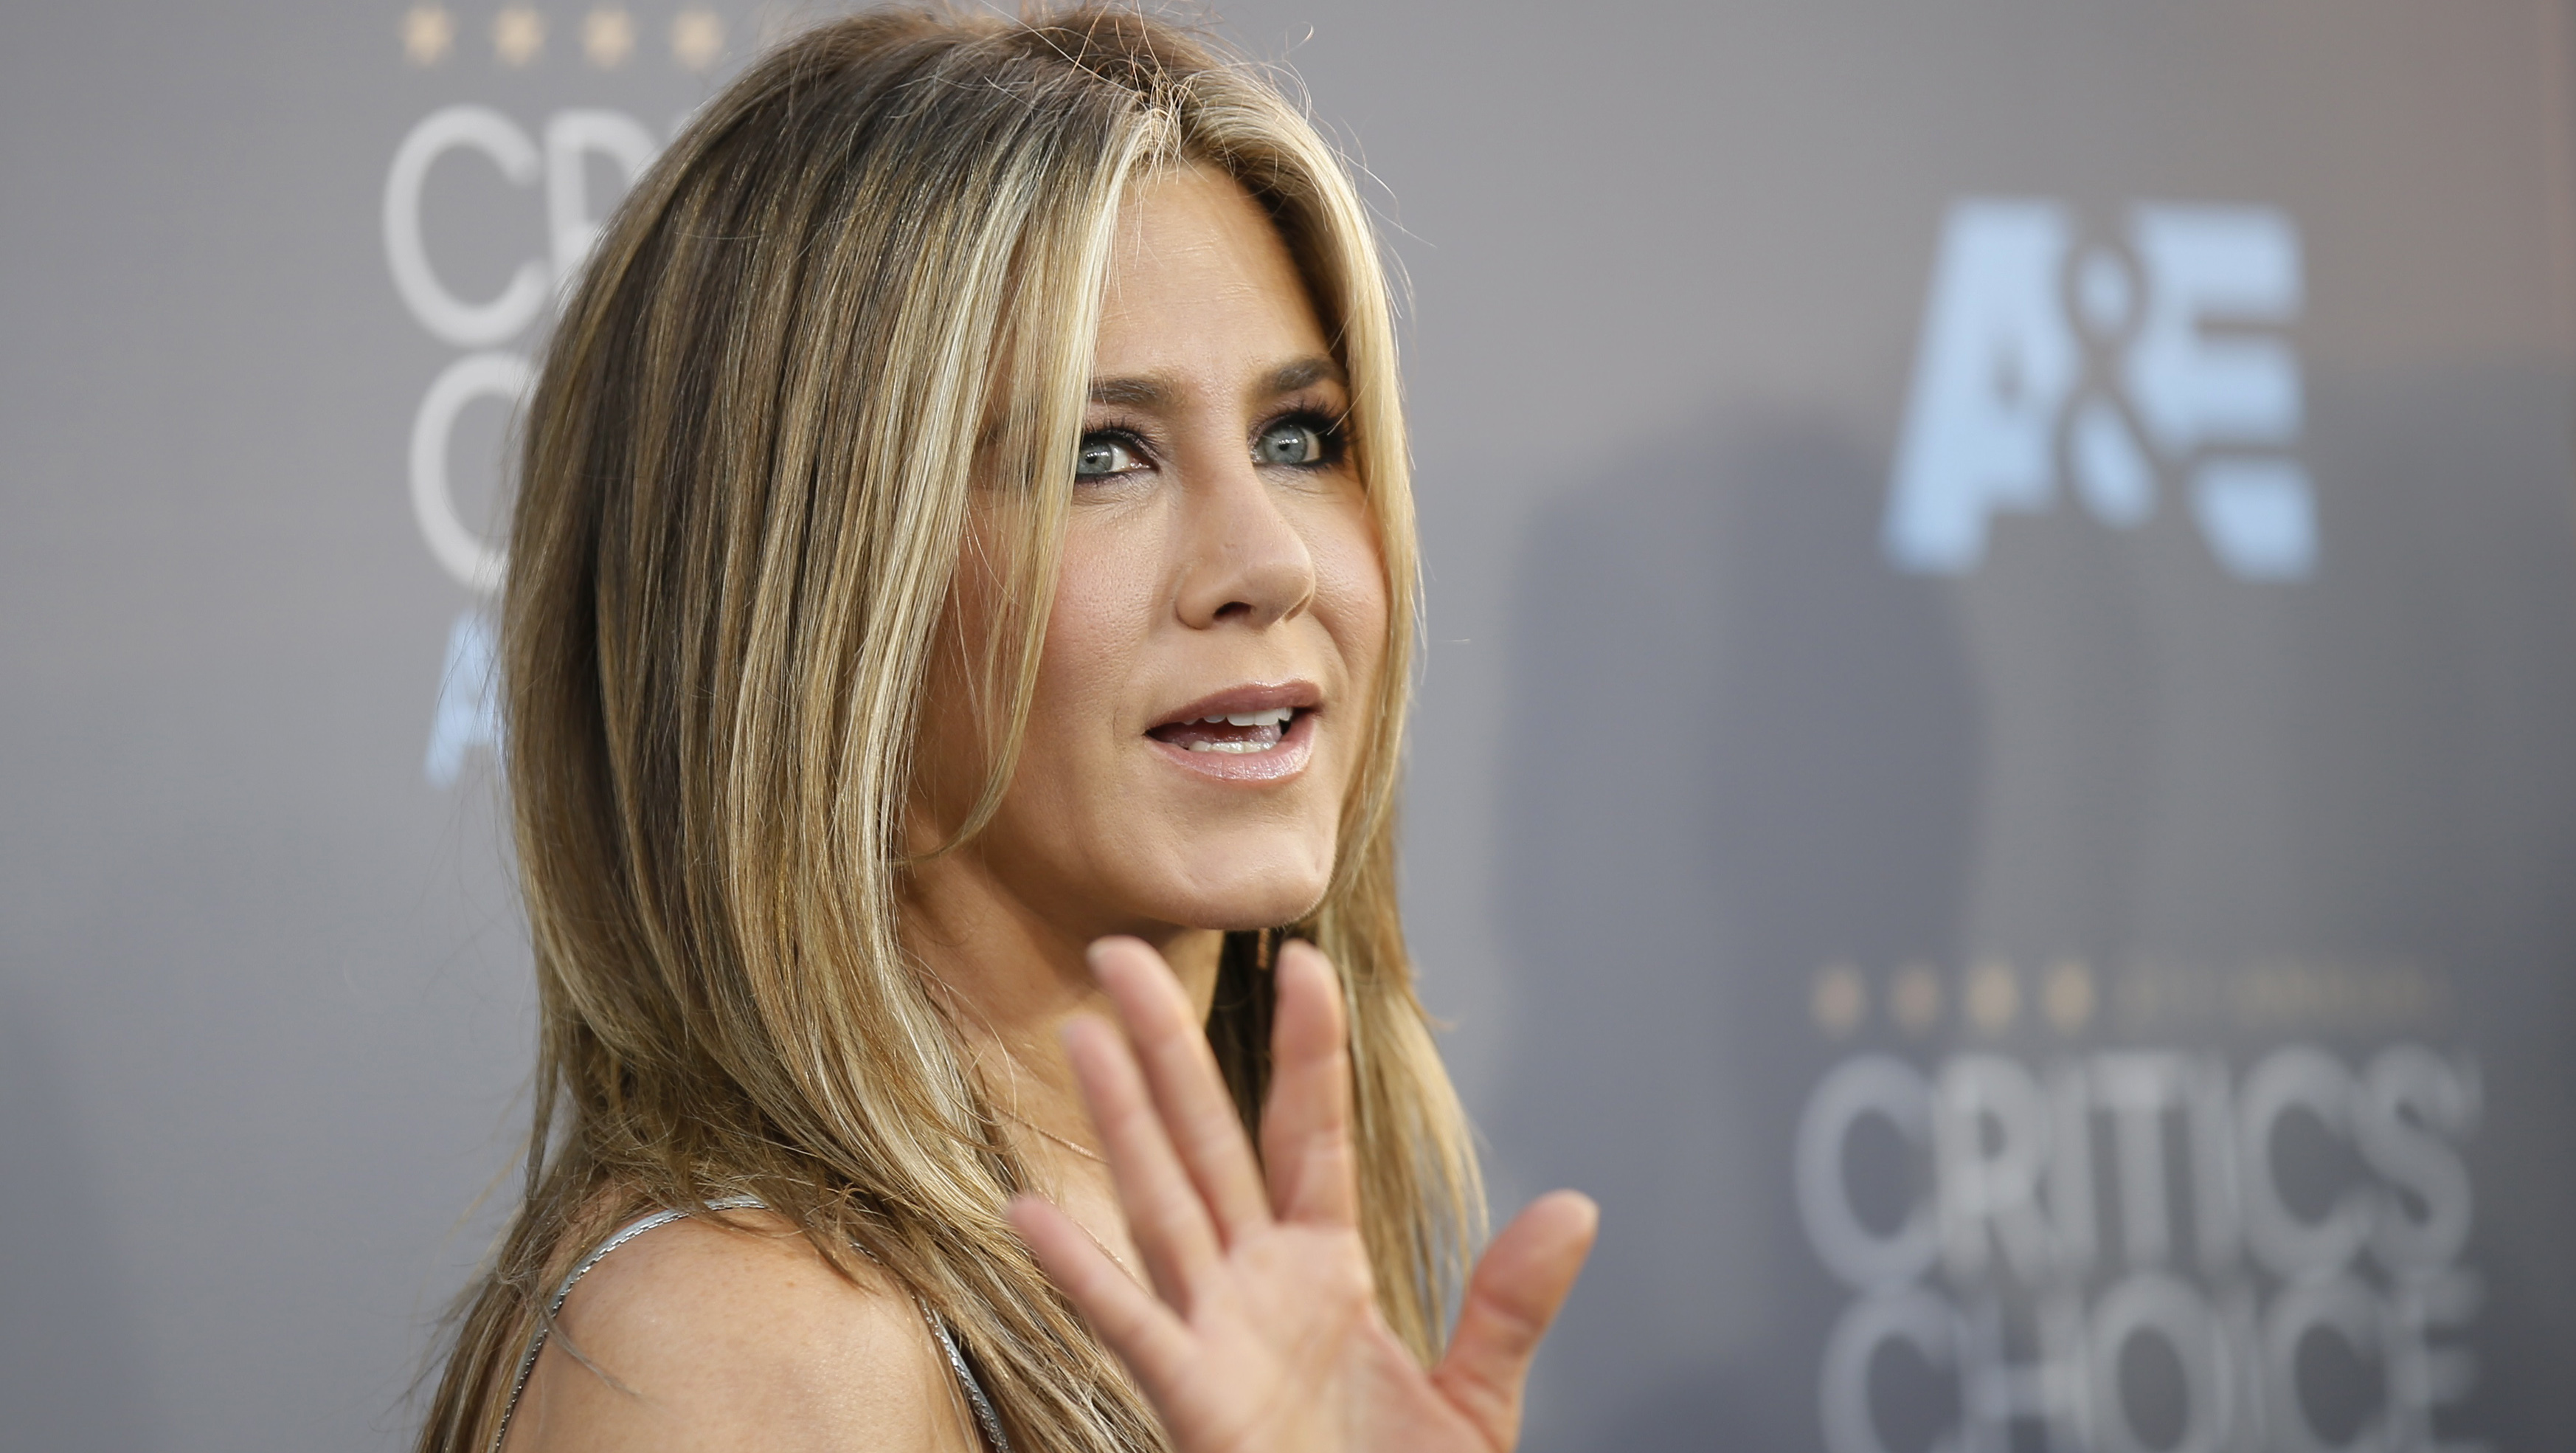 Actress Jennifer Aniston arrives at the 21st Annual Critics' Choice Awards in Santa Monica